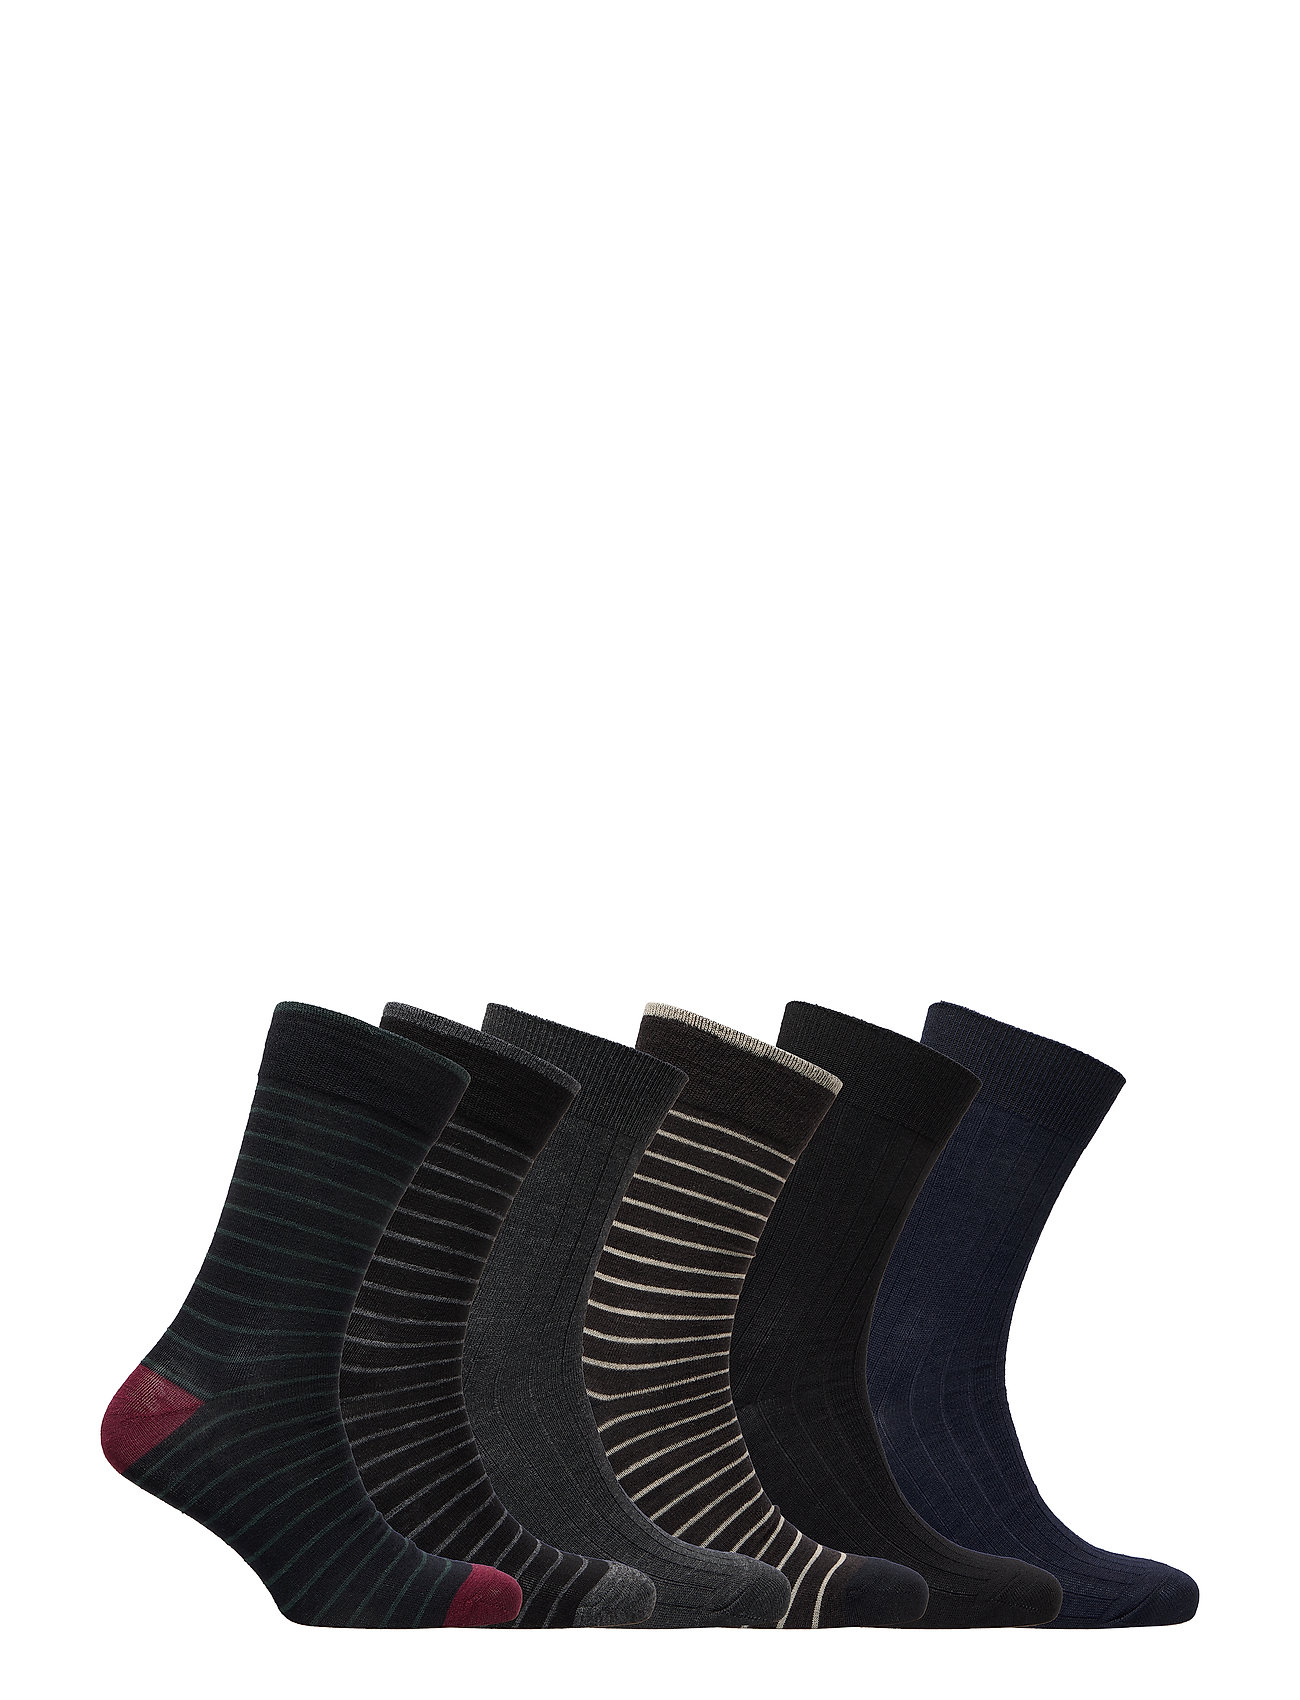 TOPECO SOCKS 6-P WOOL - MULTI COLOR